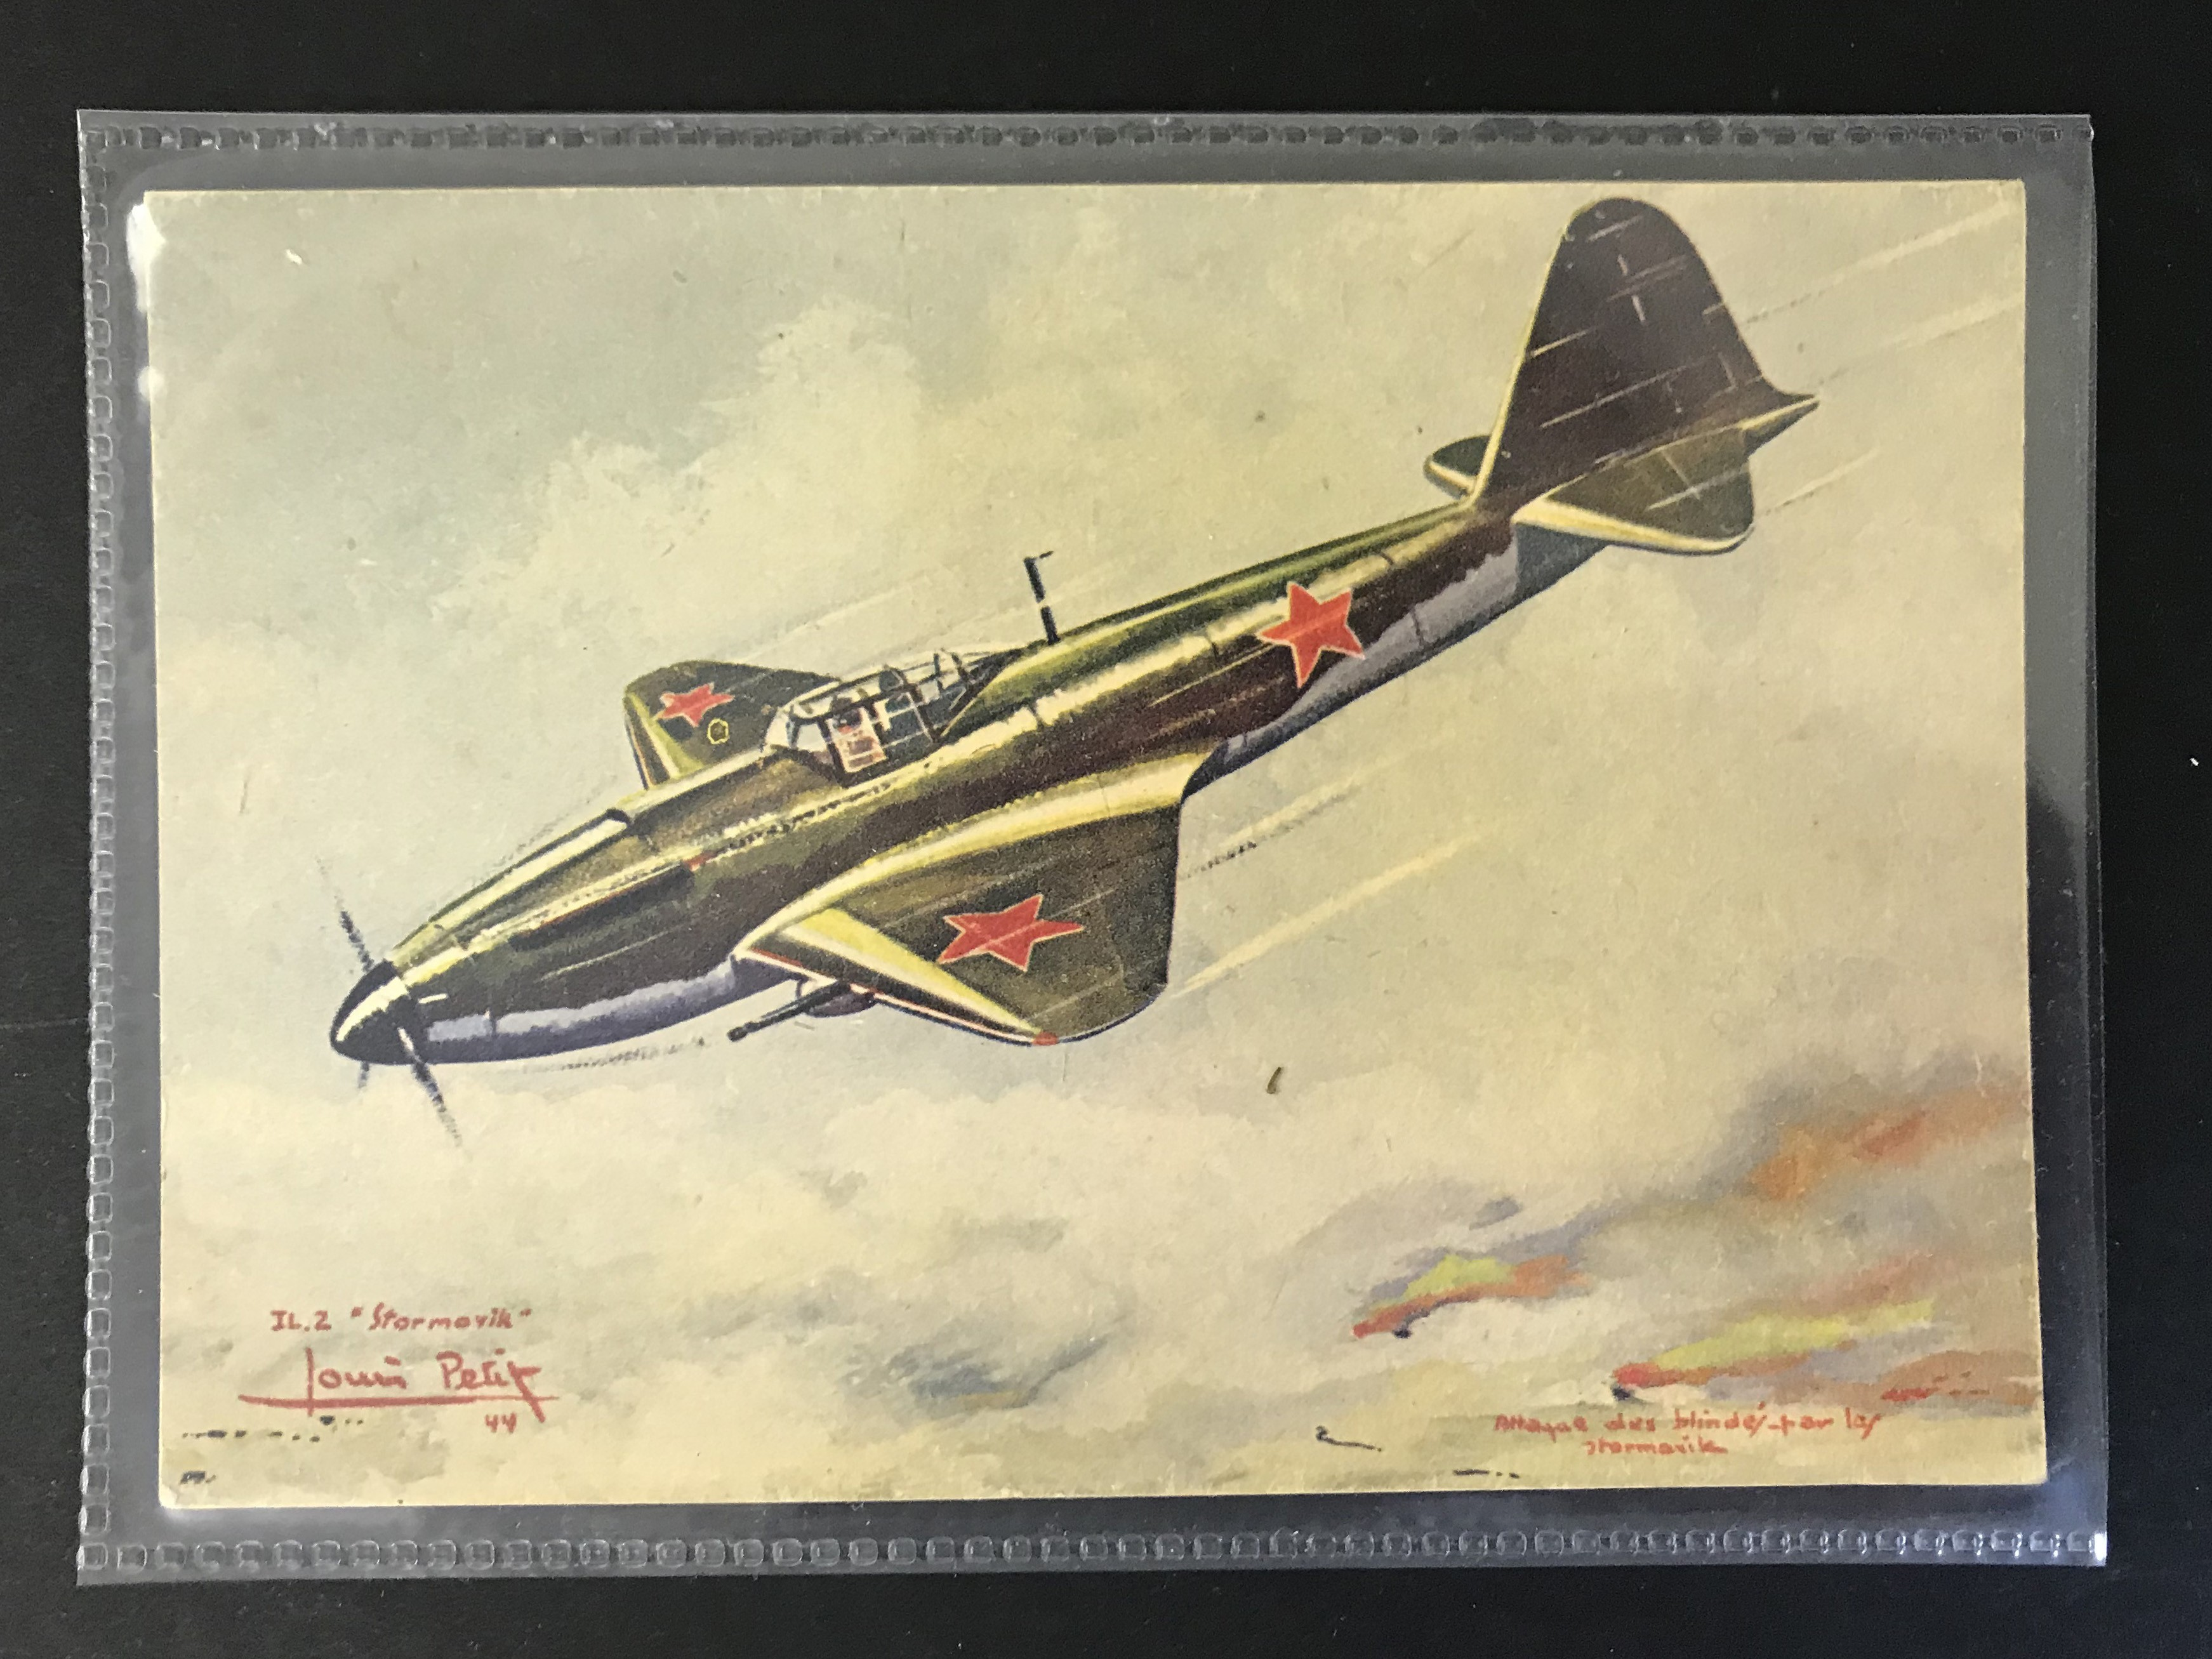 GROUP OF TWELVE FRENCH PLANES RELATED POSTCARDS - VARIOUS SERIES - Image 11 of 14